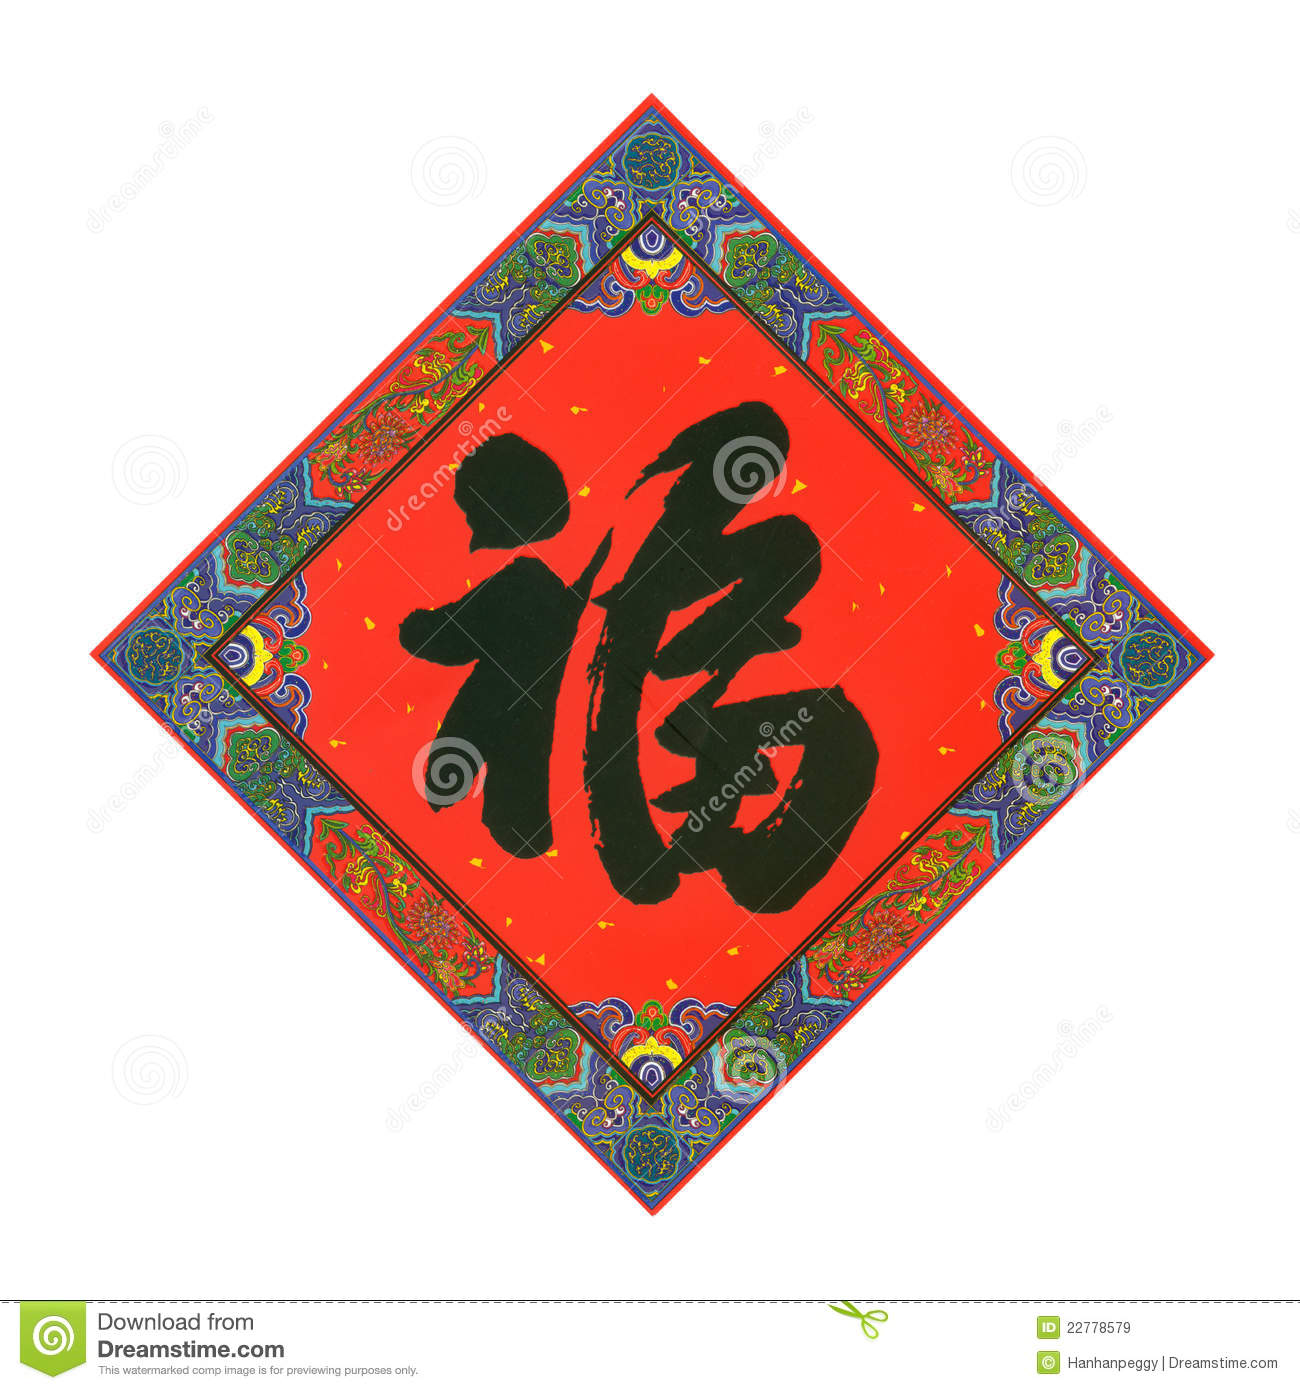 Chinese new year blessing stock image image of mandarin 22778579 chinese new year blessing kristyandbryce Choice Image